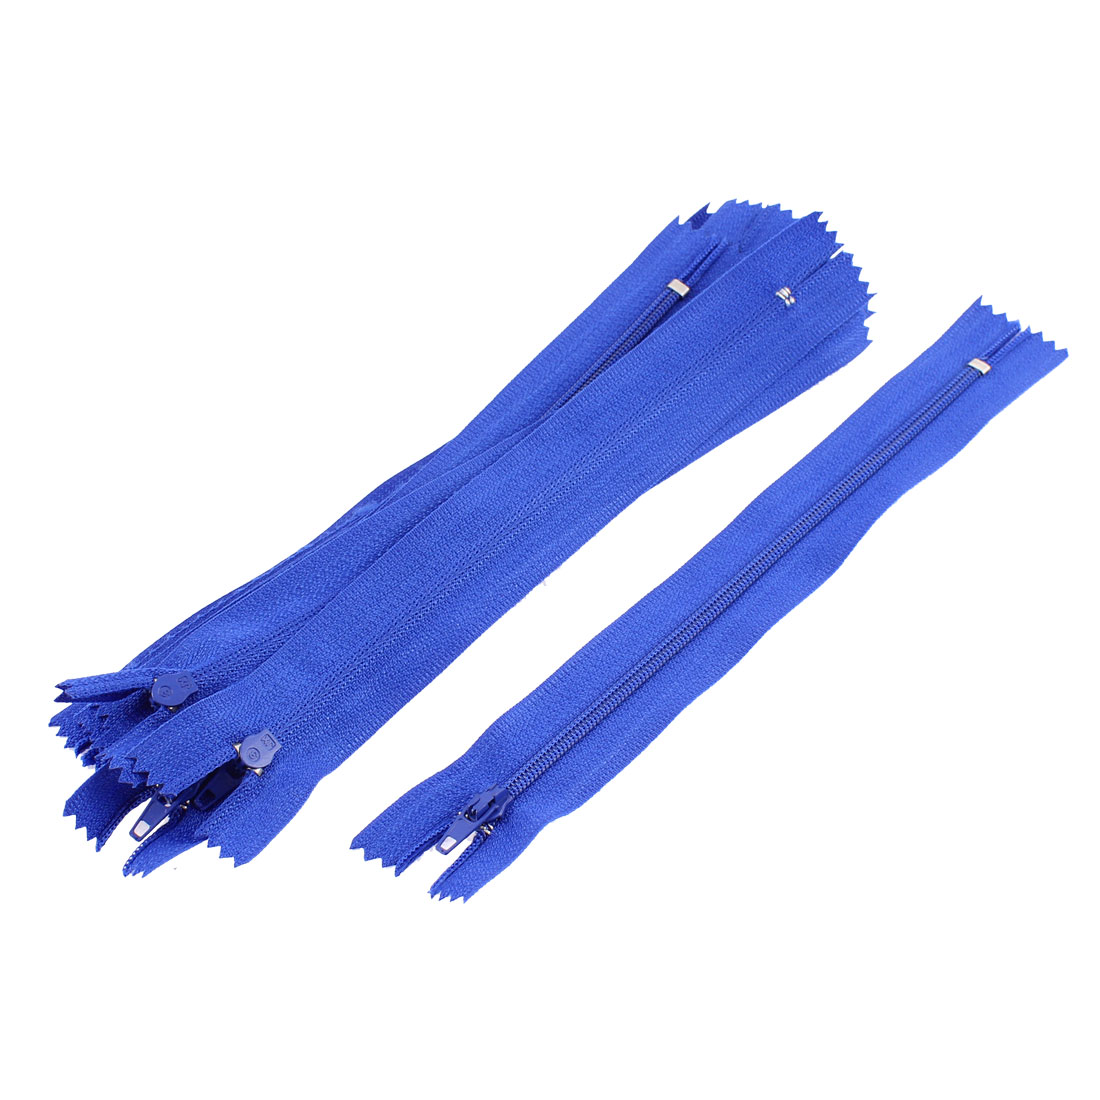 Dress Pants Closed End Nylon Zippers Tailor Sewing Craft Tool Blue 18cm 10 Pcs